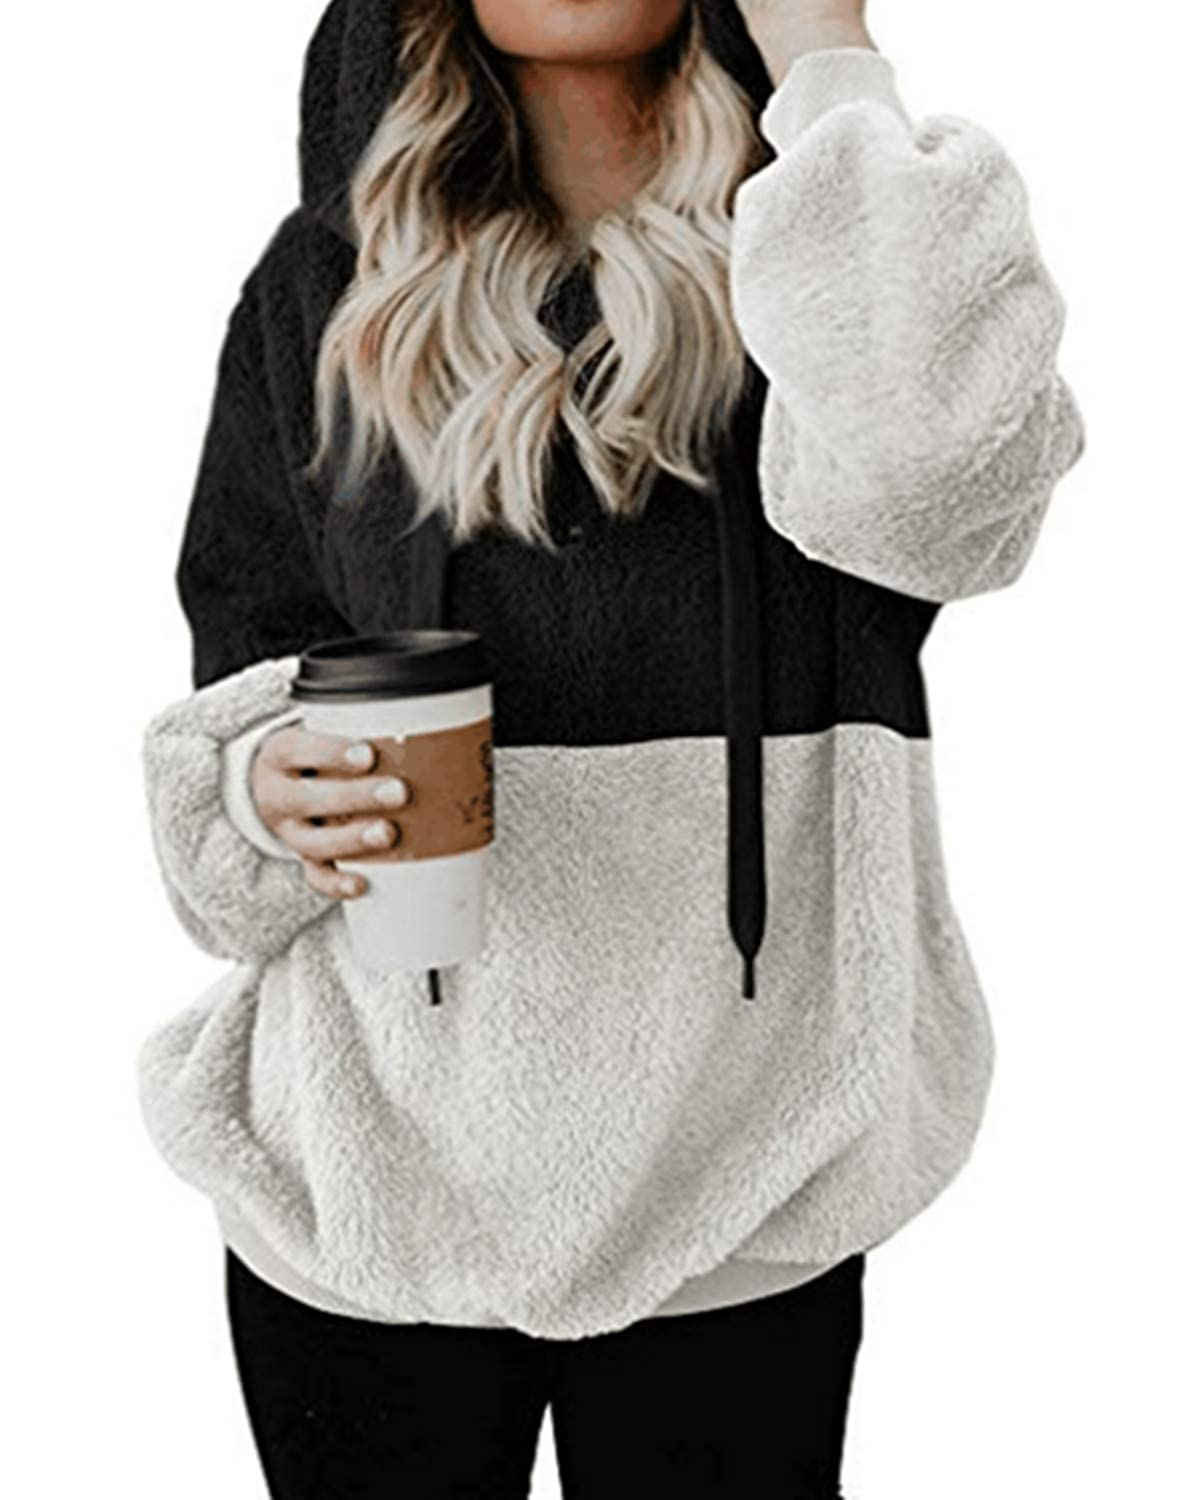 Kenoce Women Long Sleeve Fuzzy Fleece Hoodie Loose Fluffy Hooded Sweatshirt Outwear Half Zip Neck with Pockets KENOCEMUSWINA2620